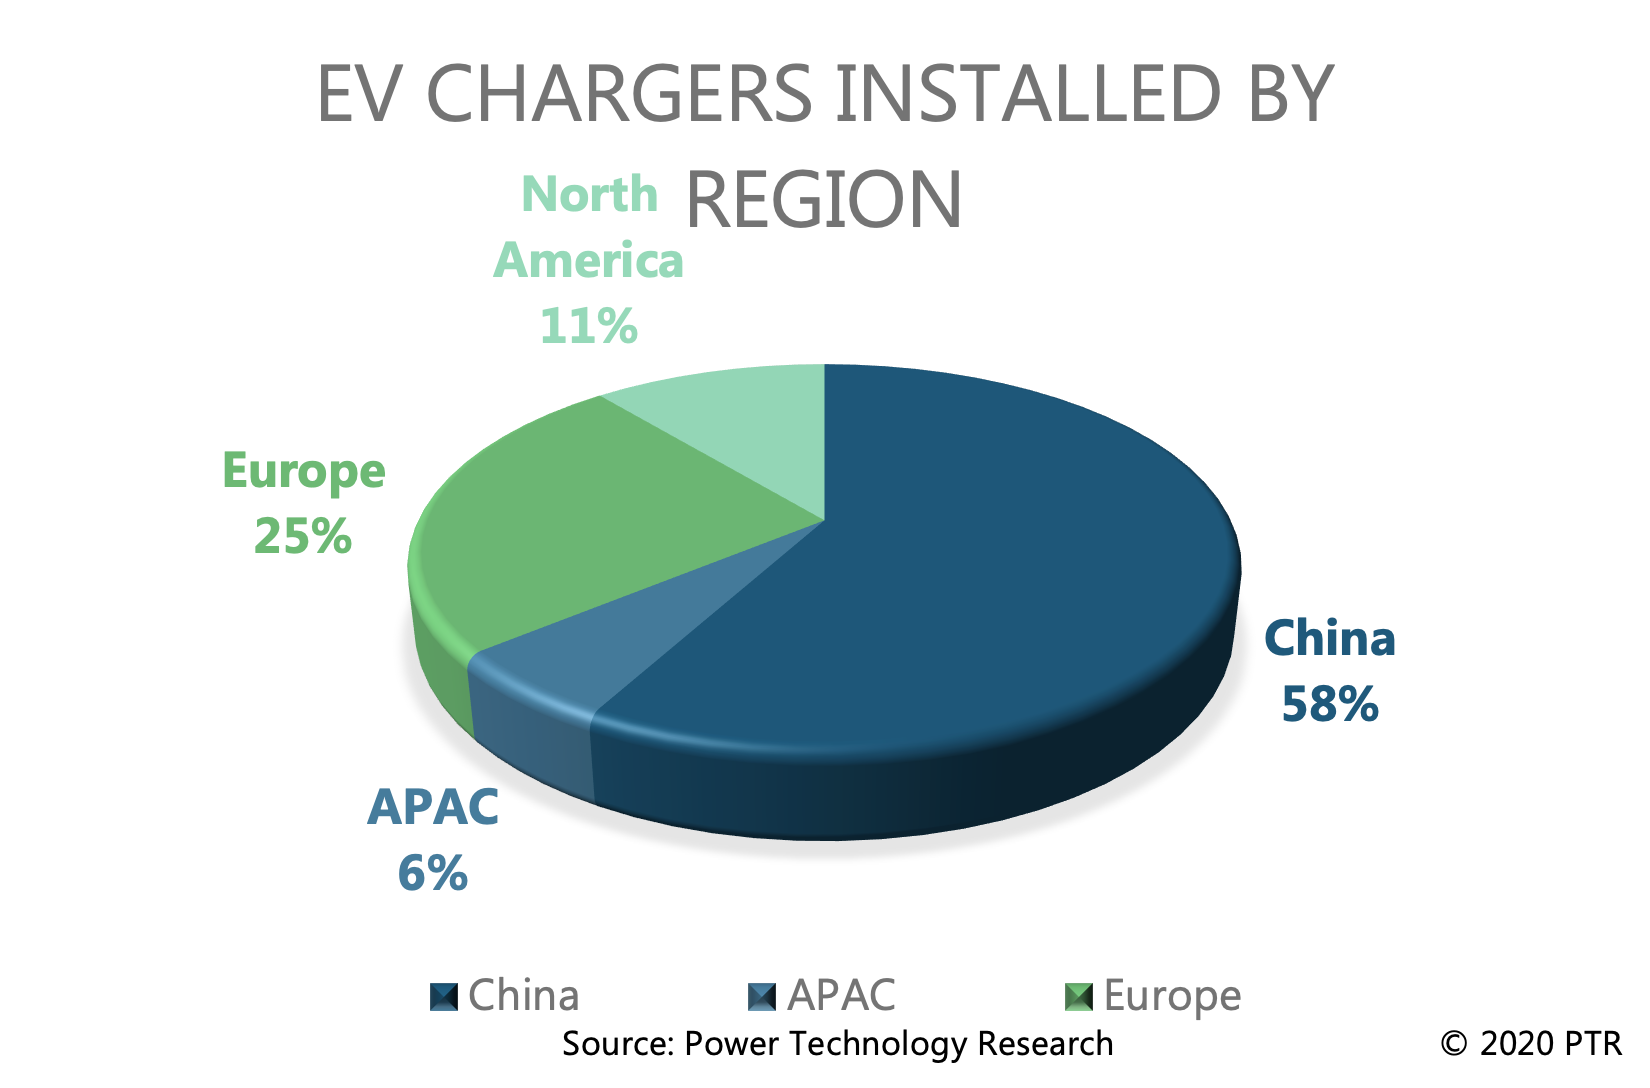 EV Chargers Installed by Region